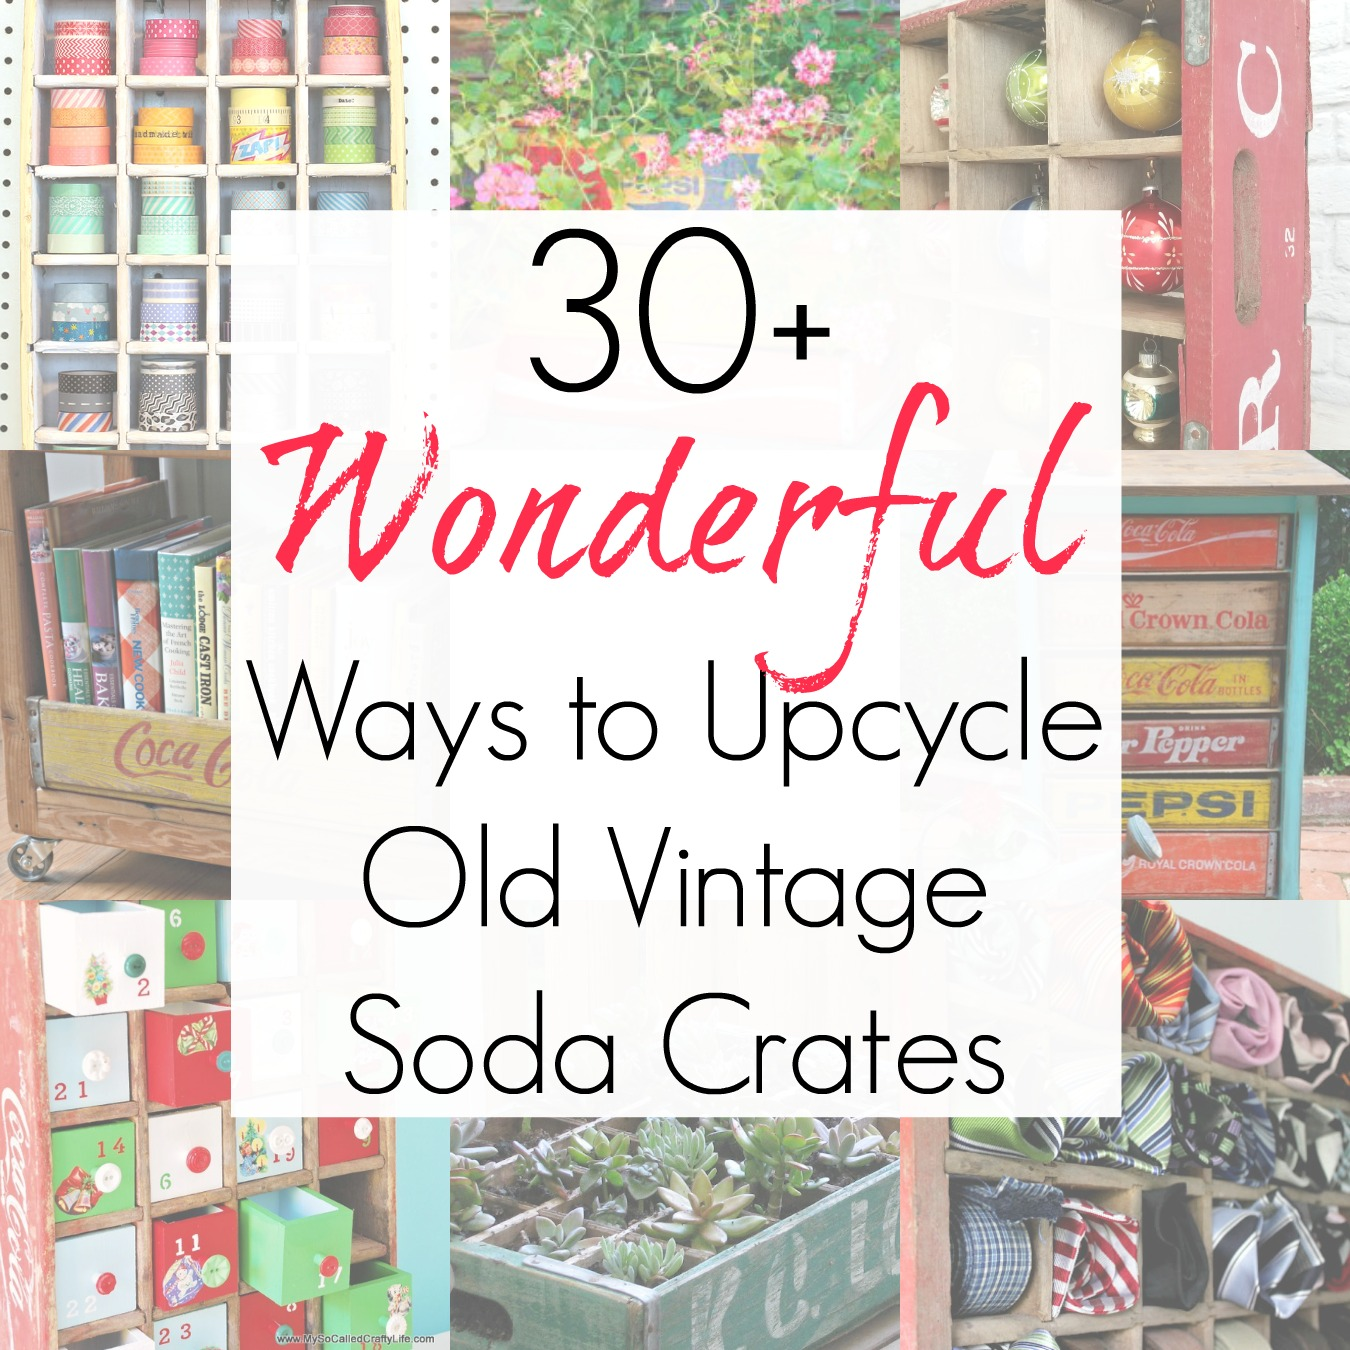 30+ Wooden Crate Ideas for Vintage Soda Crates